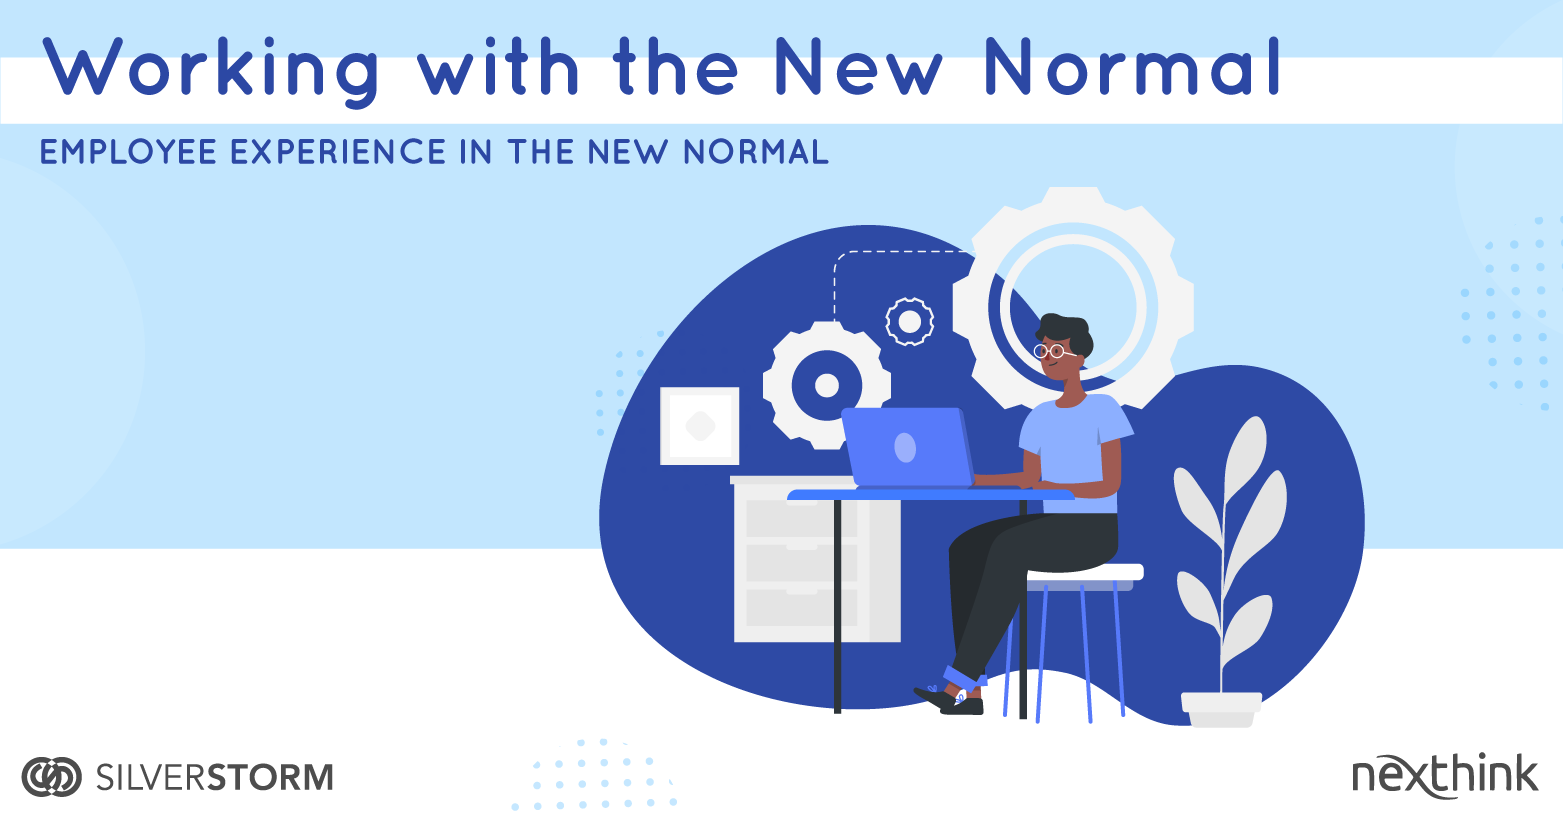 Working in the New Normal